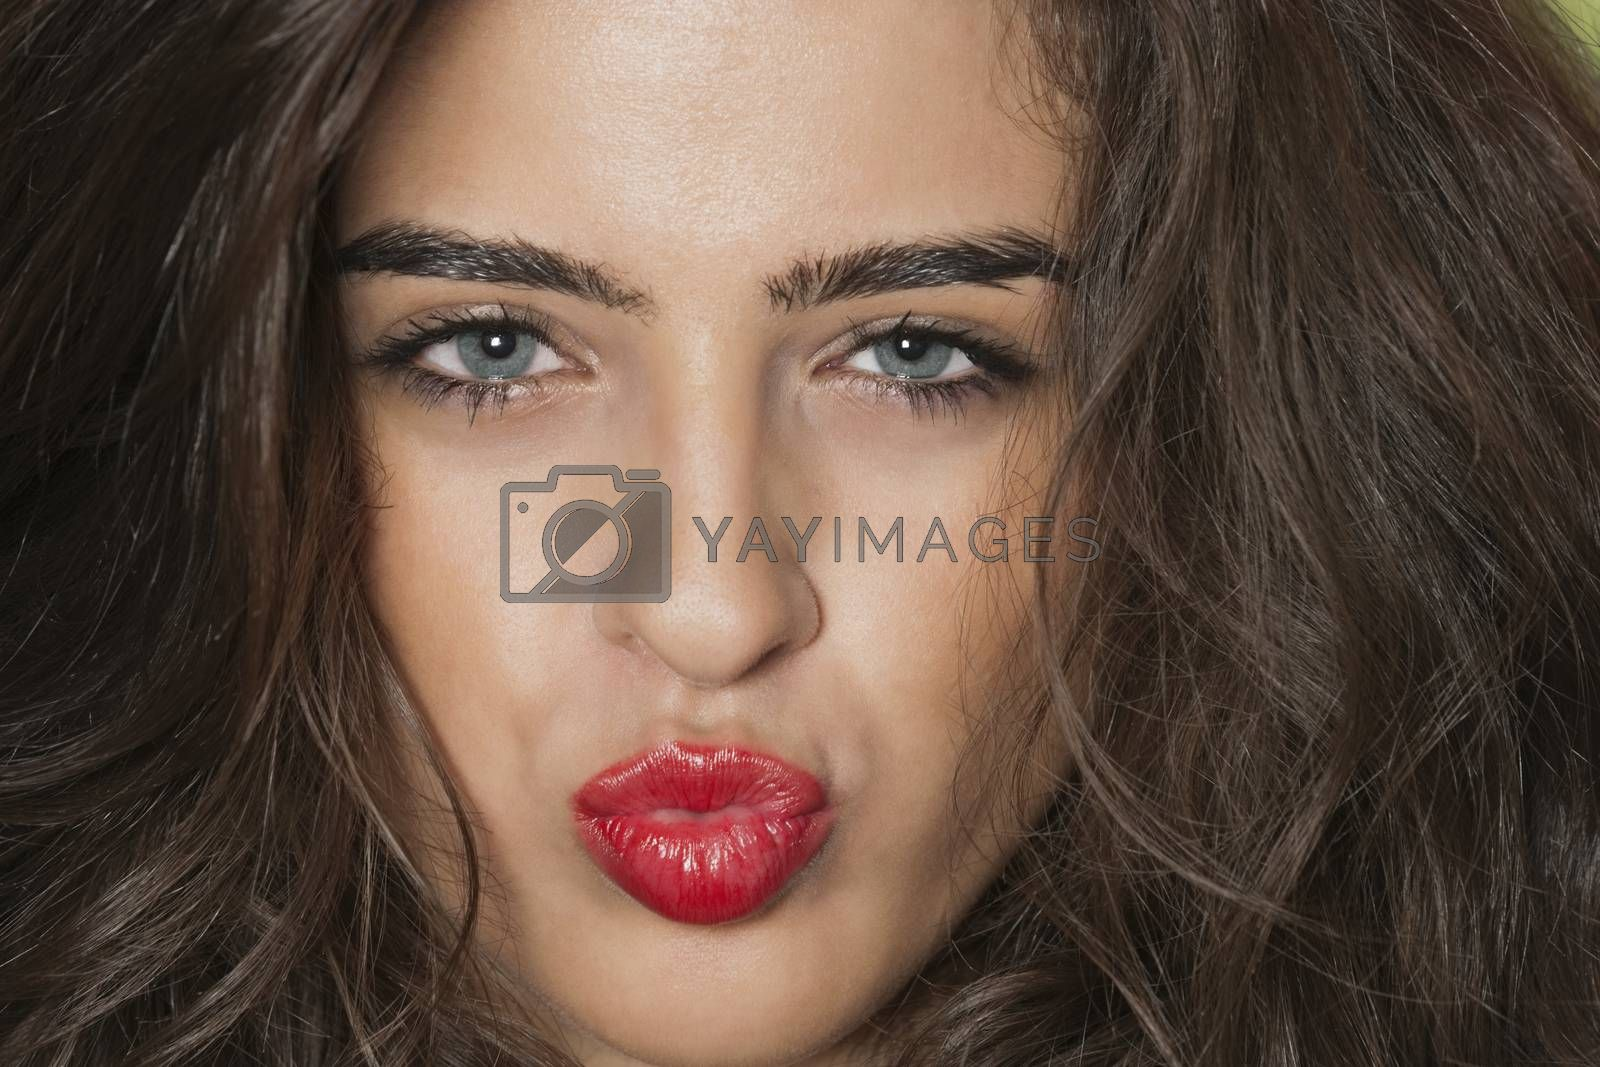 Close-up portrait of a seductive young female puckering lips